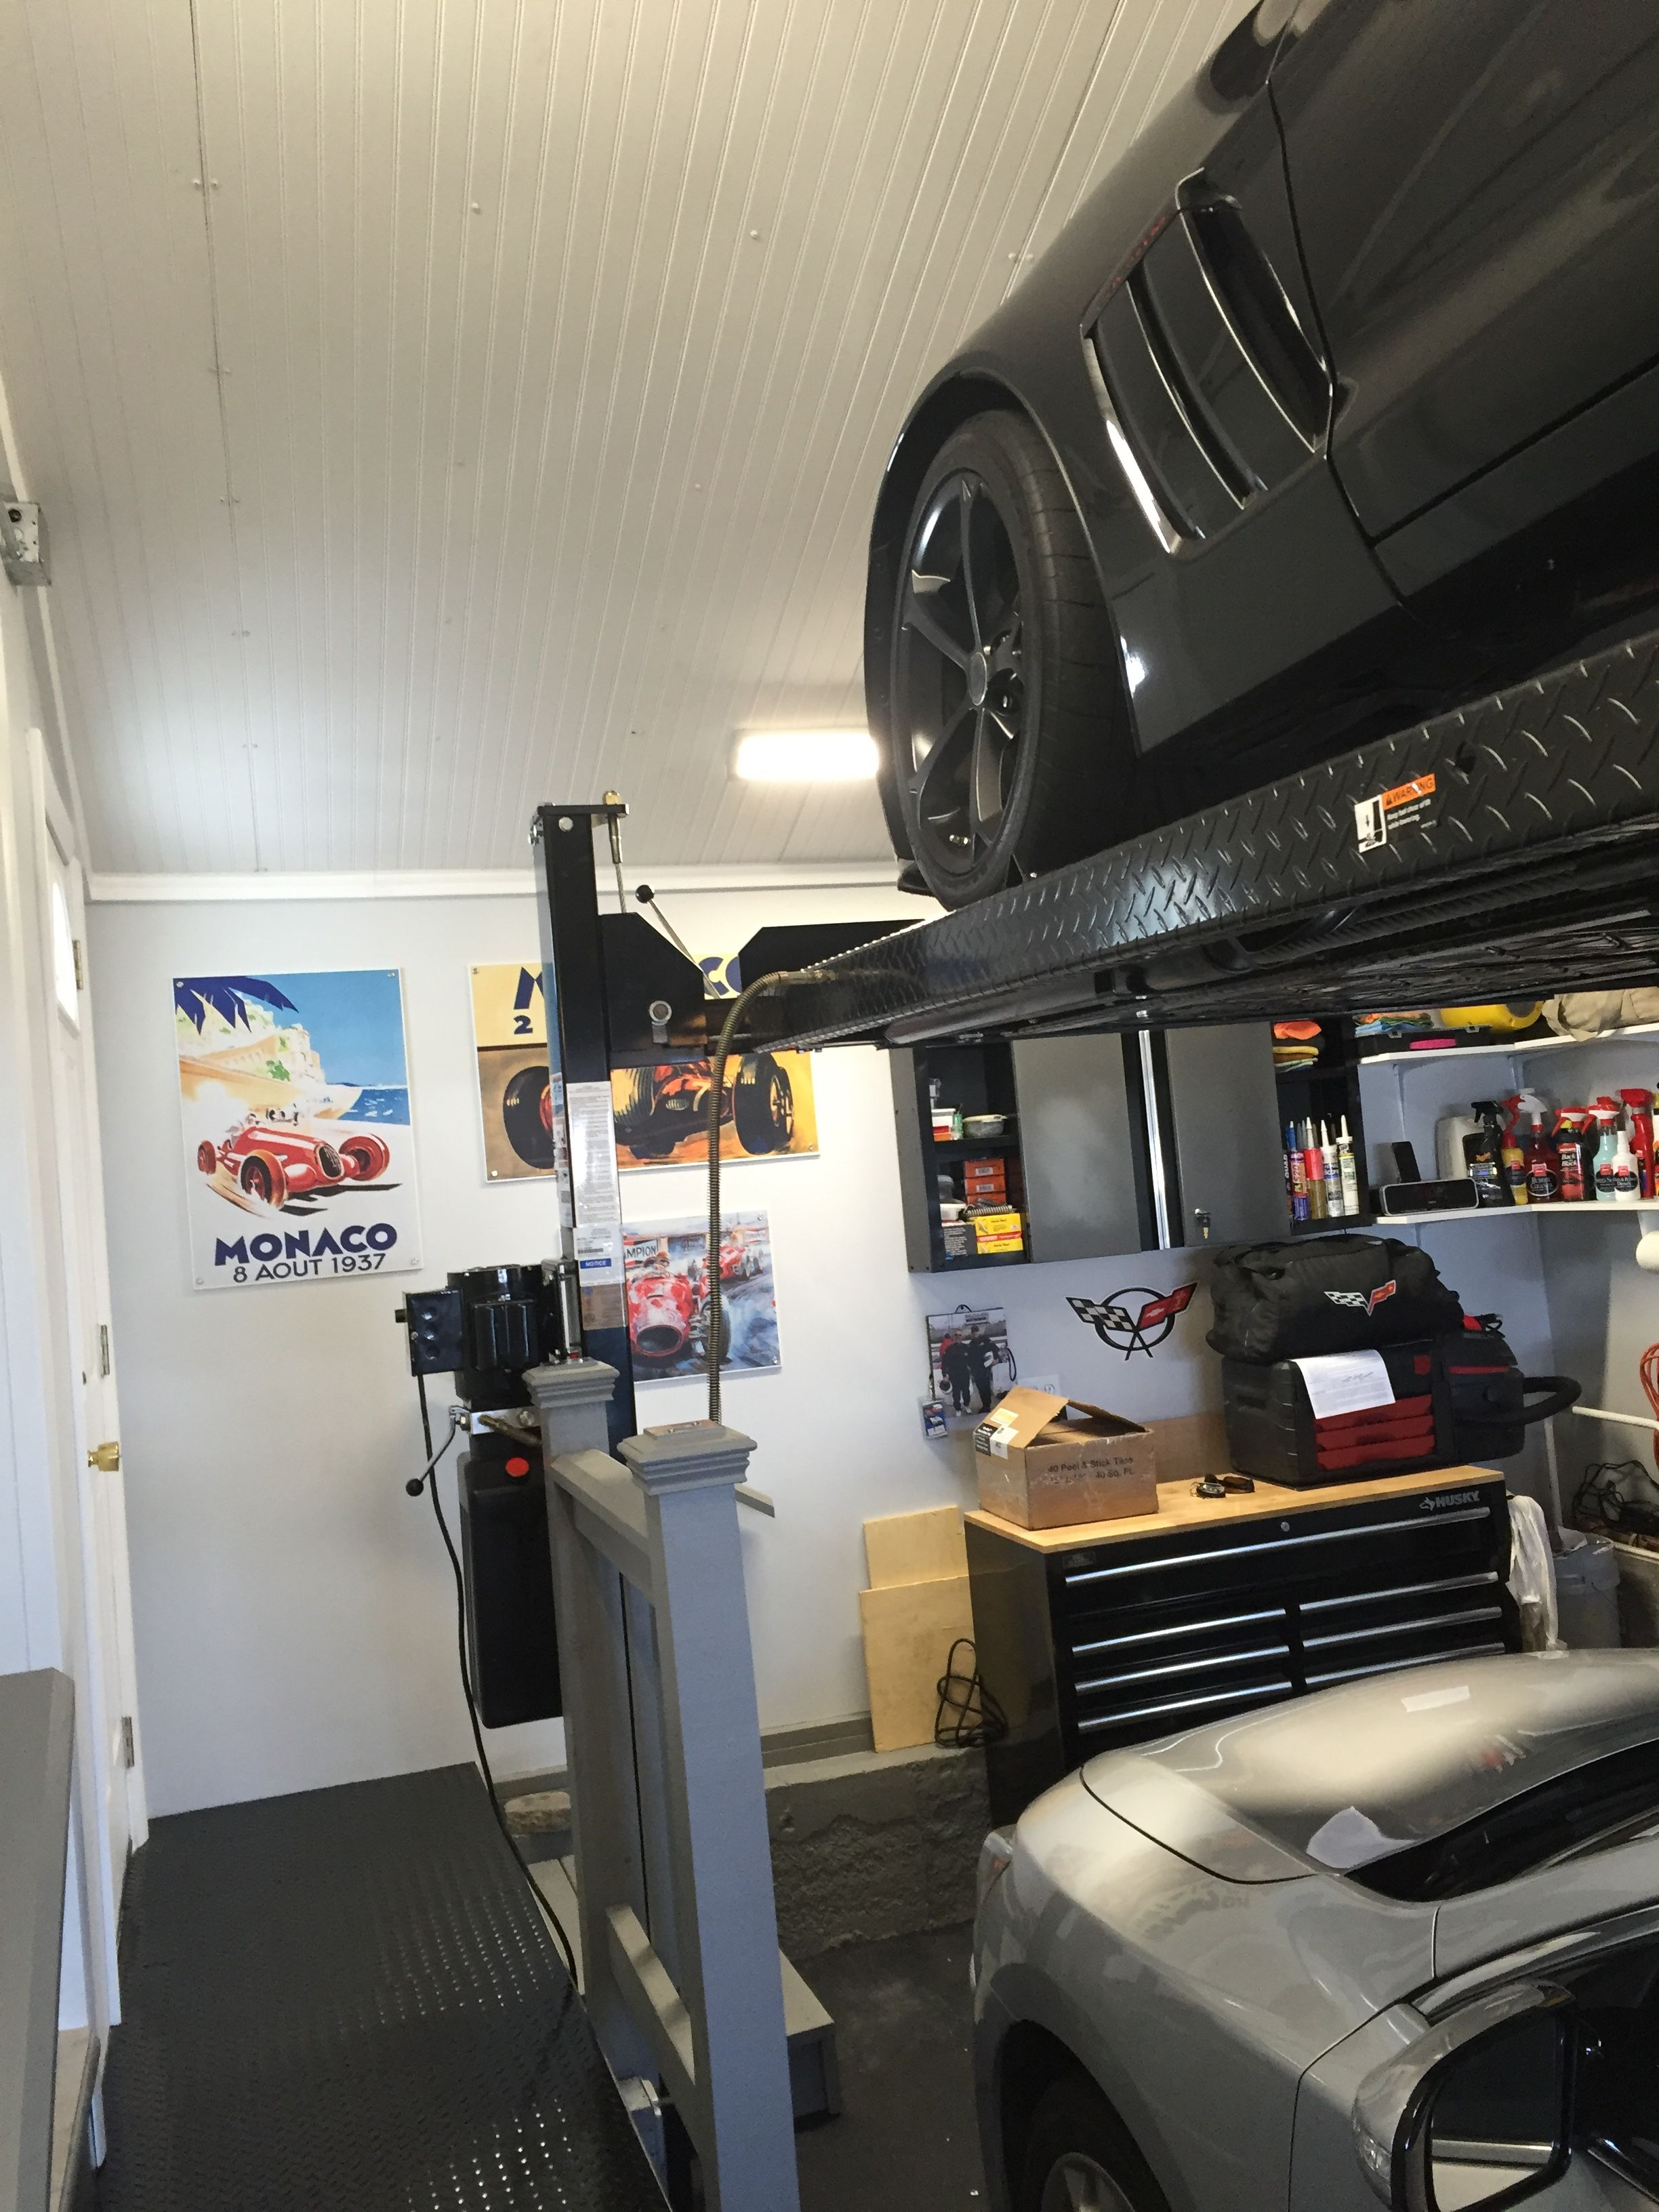 Garage Car Lift Diy Man Cave Makeover Garage Car Lift 1 Car Garage Now 2 Car Garage Car Lift Man Cave Makeover